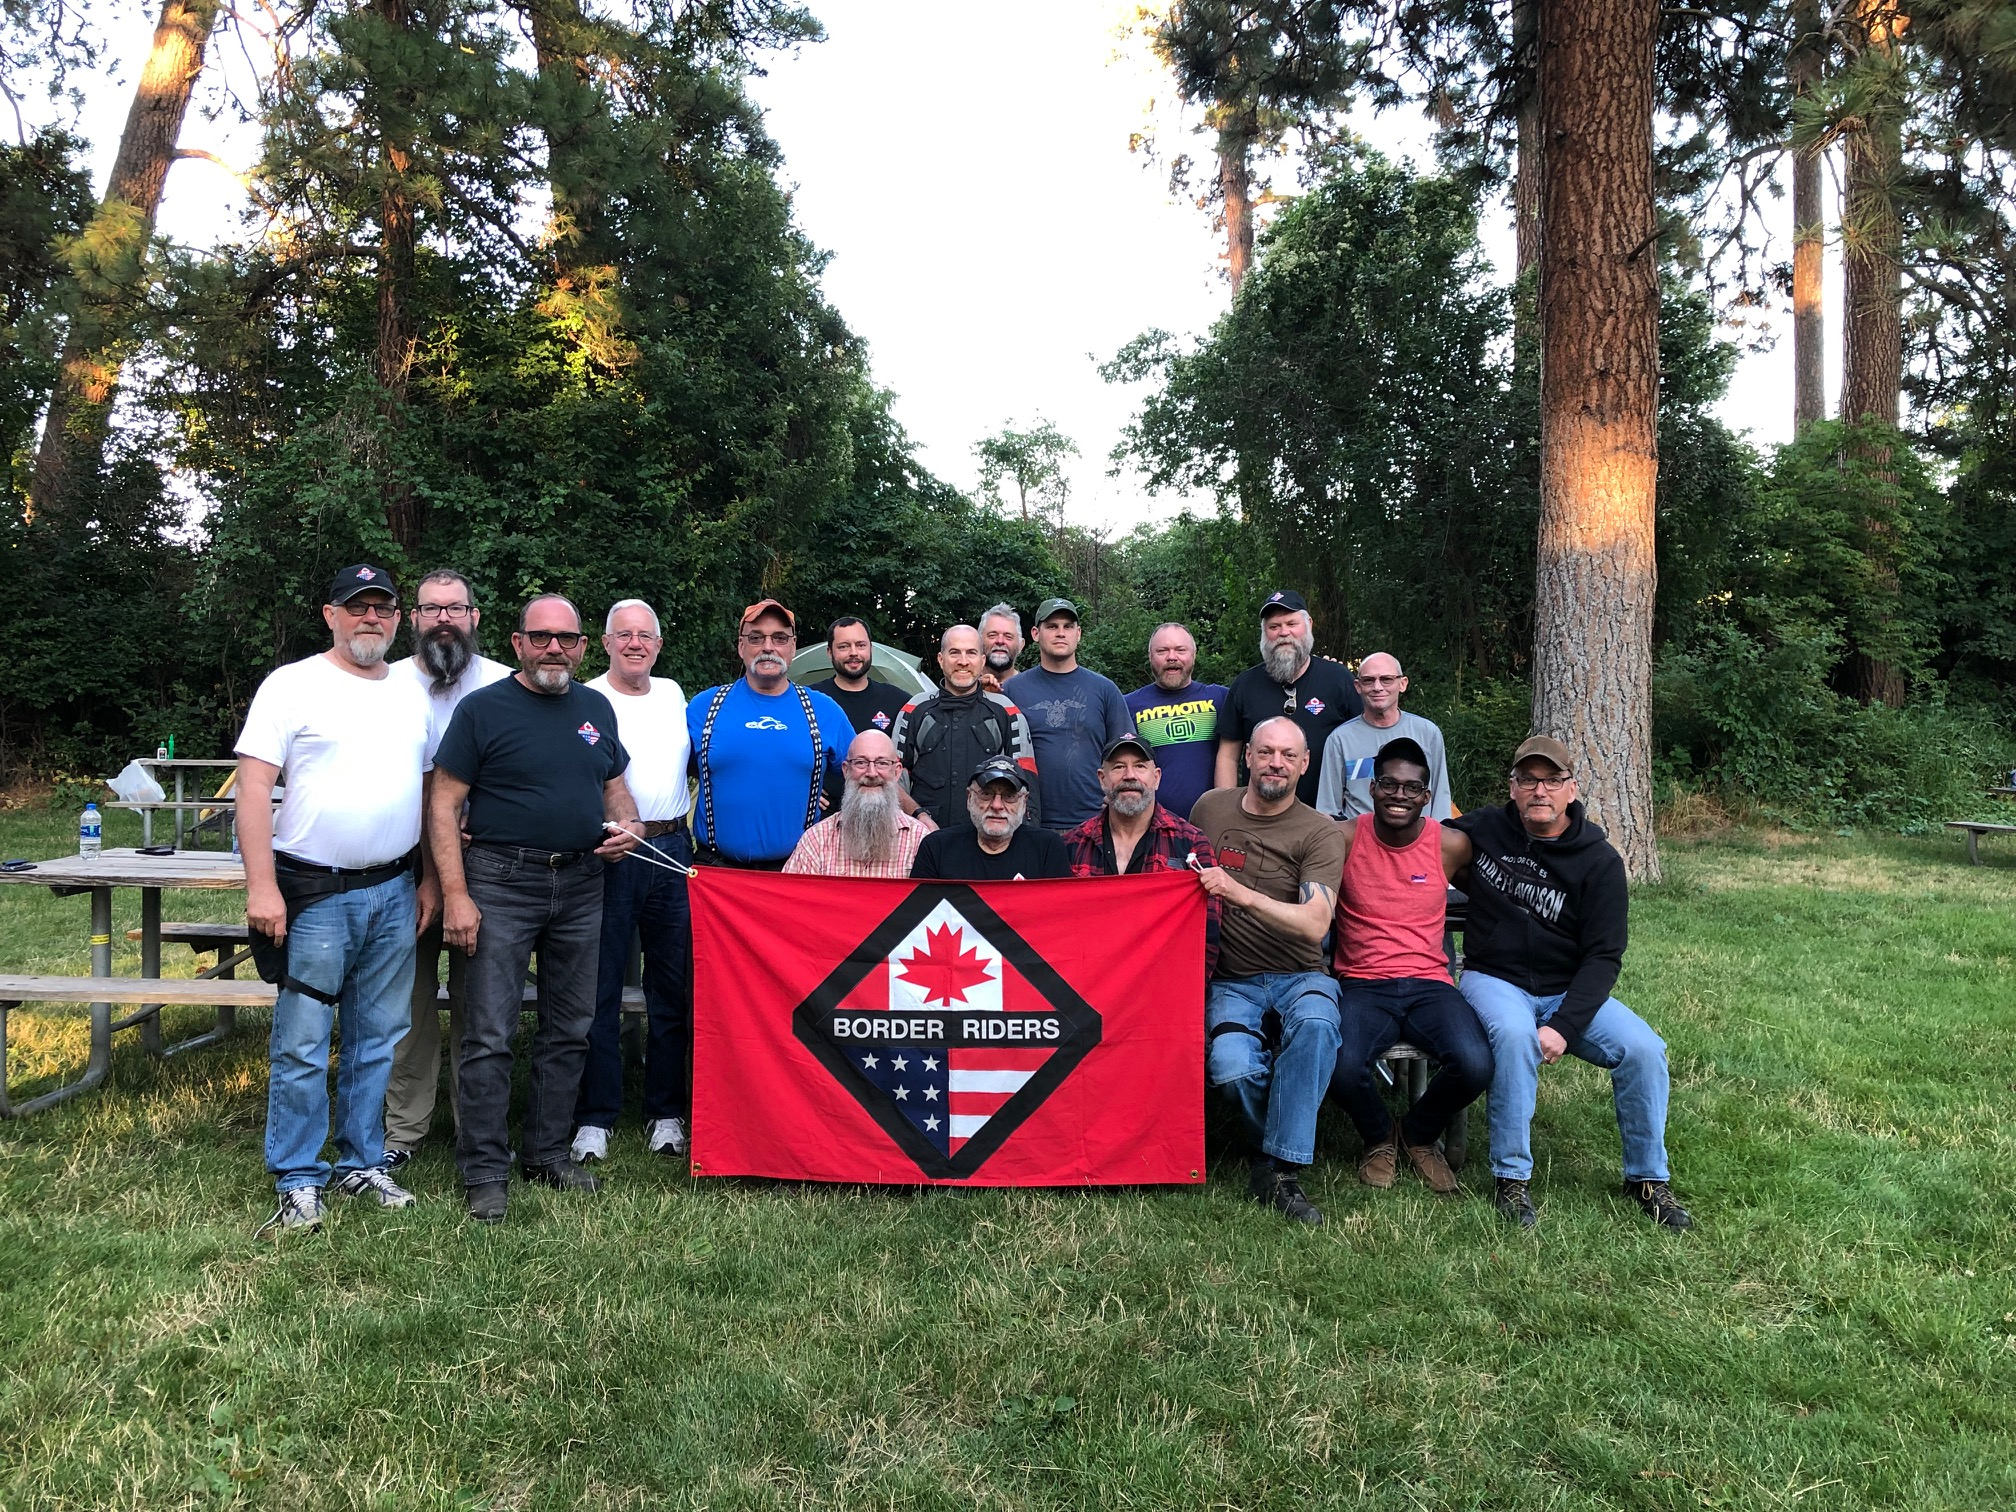 BRMC Group photo @ Lewis & Clark campground